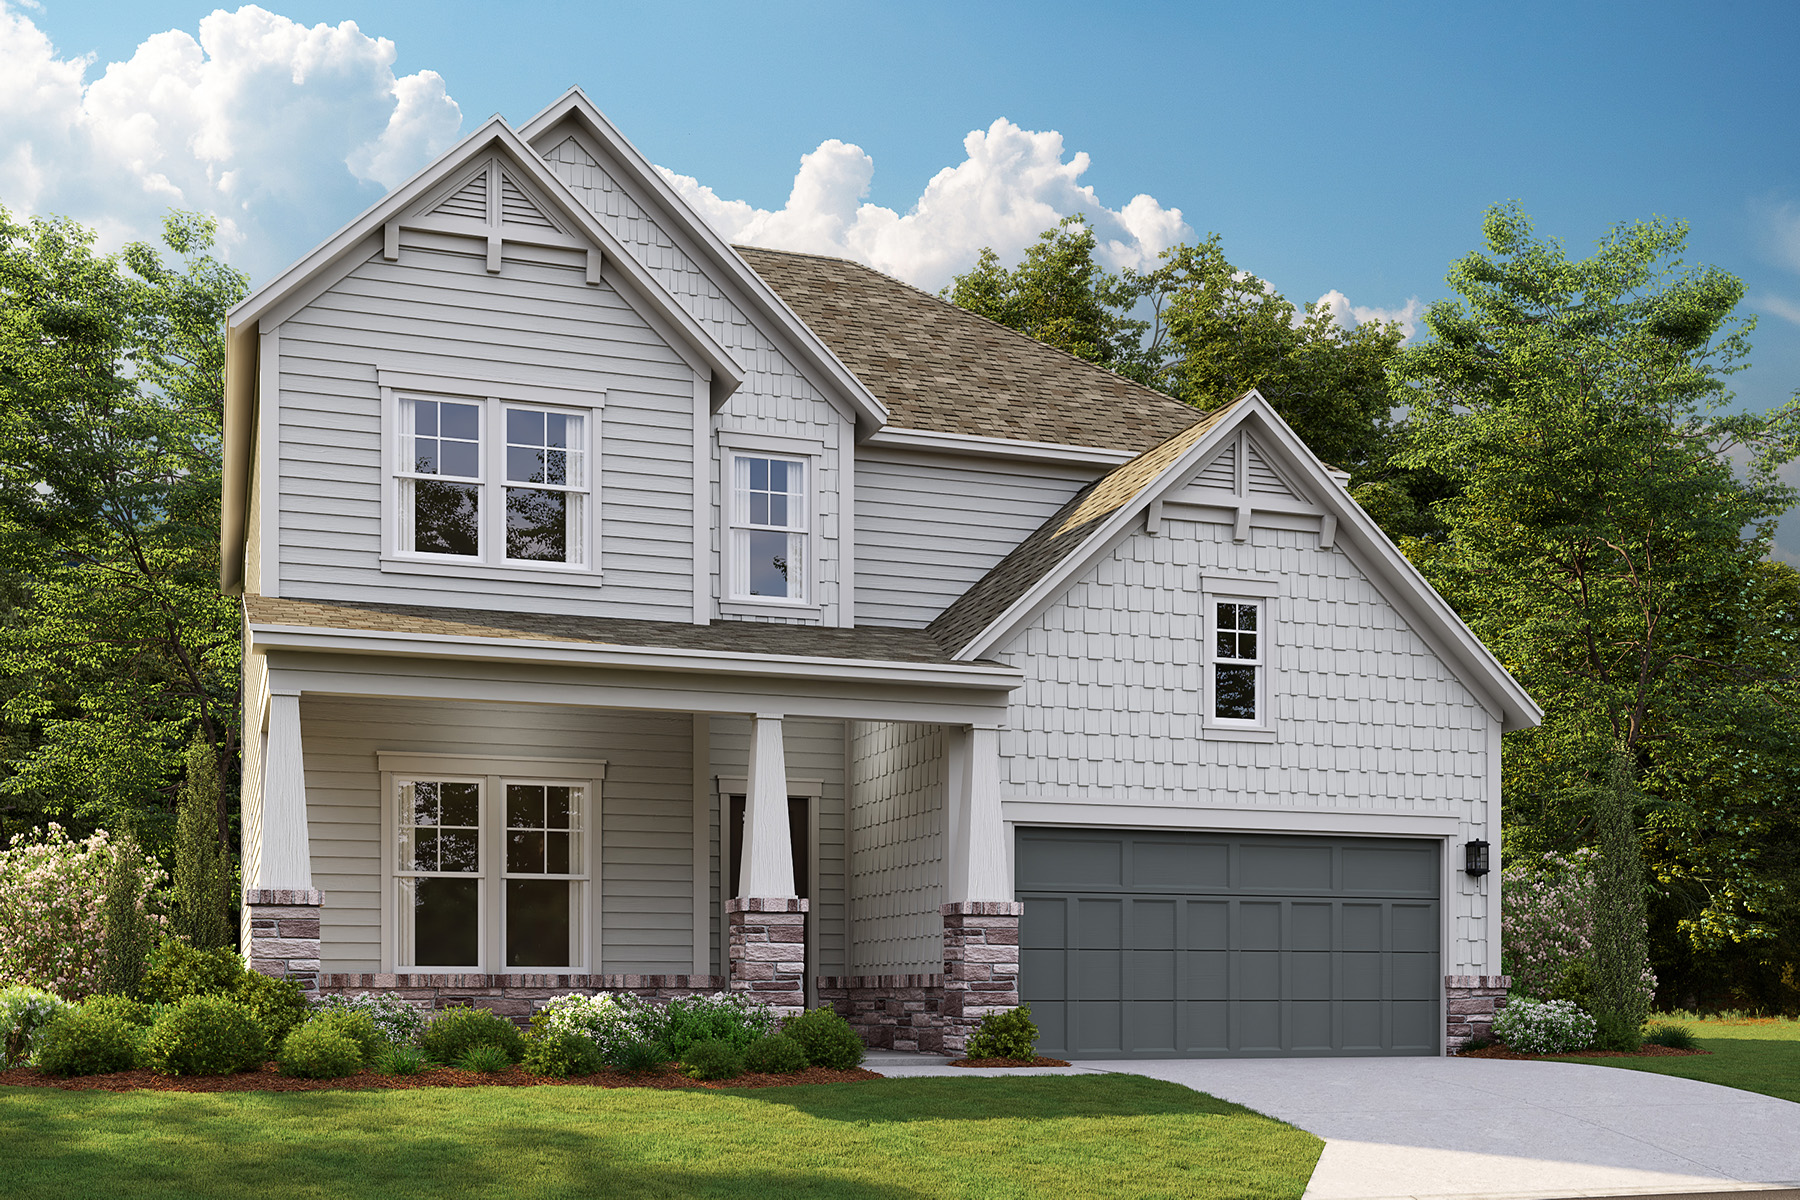 Single Family Homes for Sale at Discover The Enclave at Belvedere 3392 Alcan Way Tucker, Georgia 30084 United States